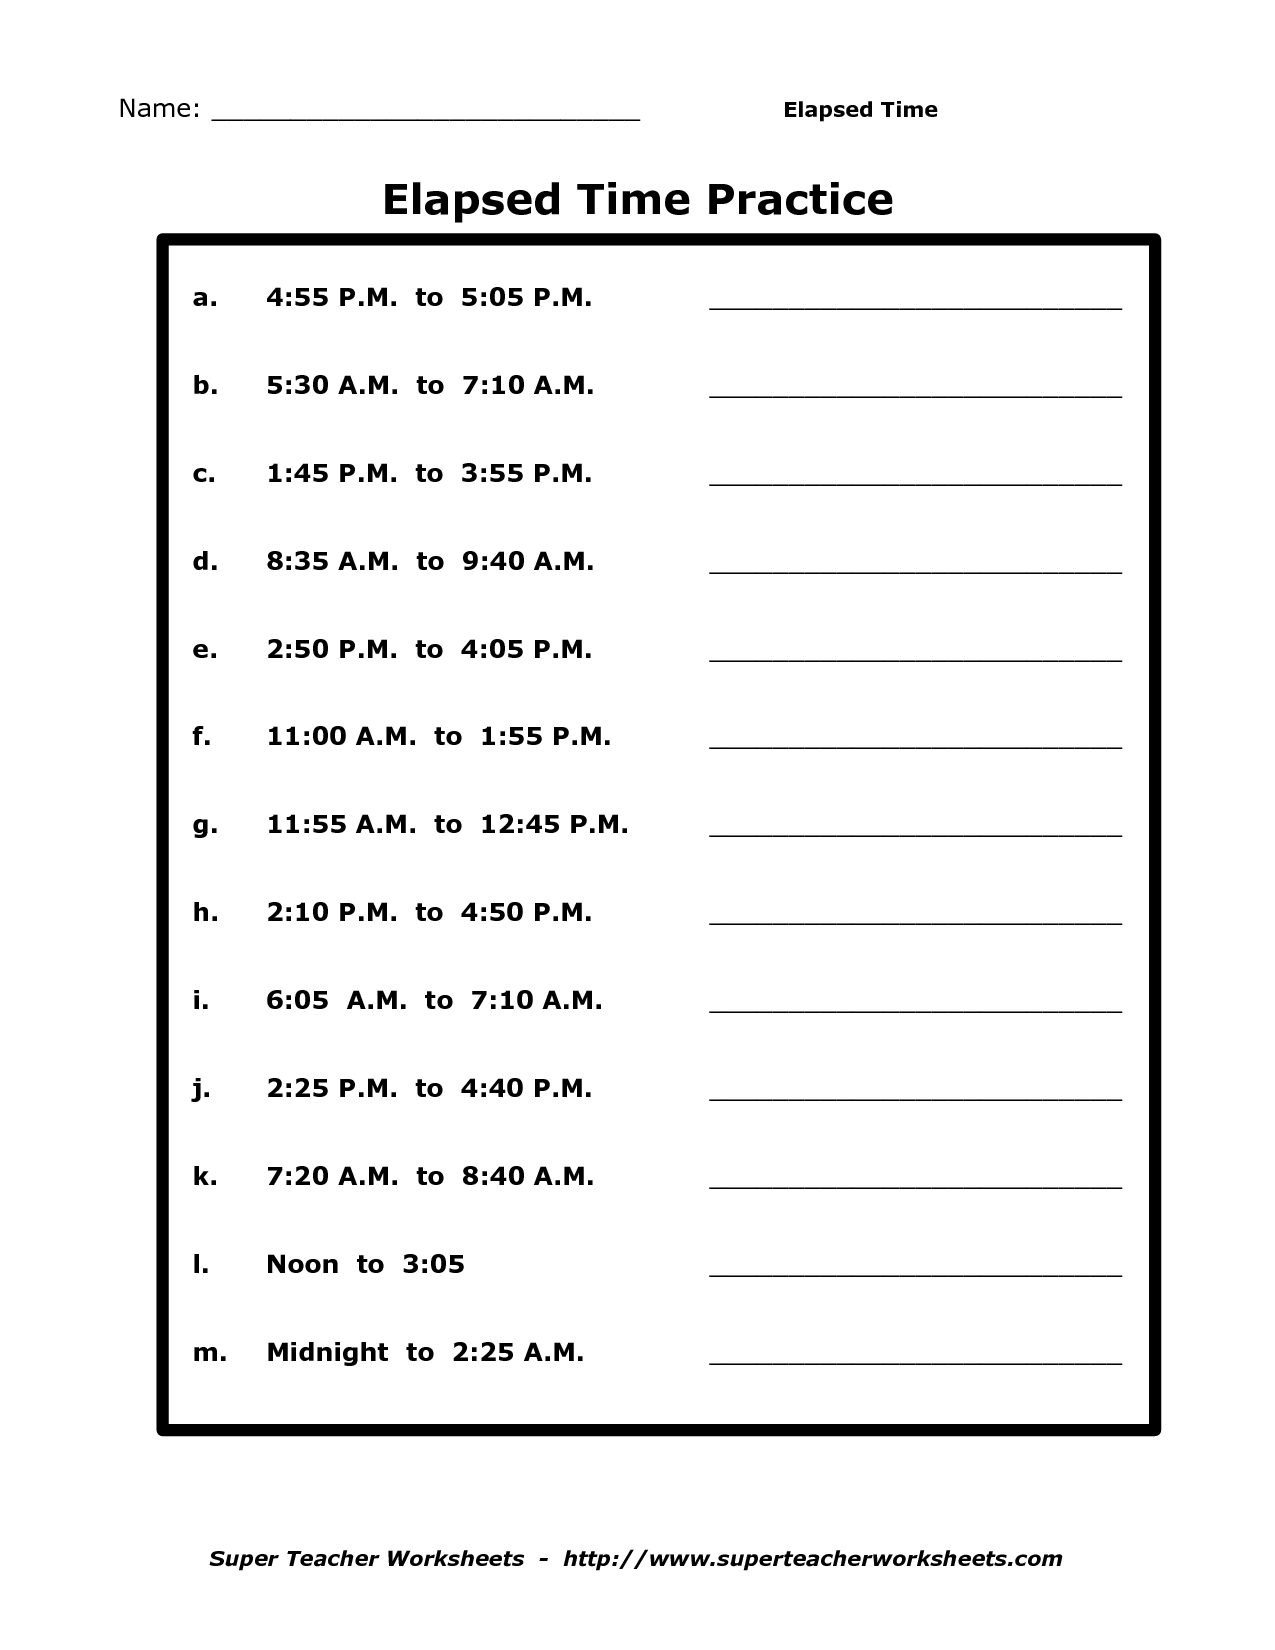 19 Best Images Of Elapsed Time Worksheets Second Grade